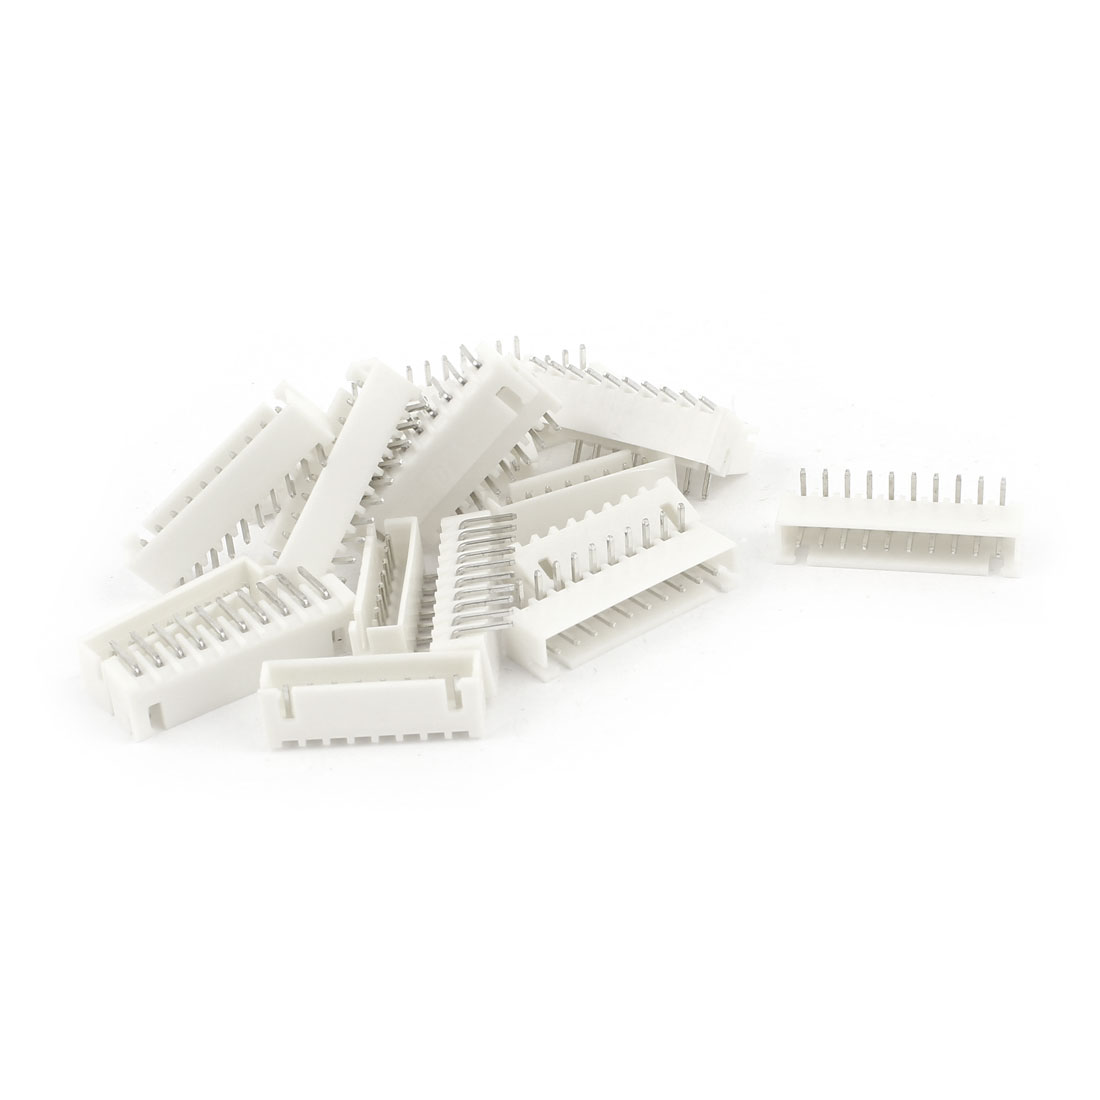 20pcs Right Angled 2.54mm Spacing 10-Pin JST XH Connector Pin Header